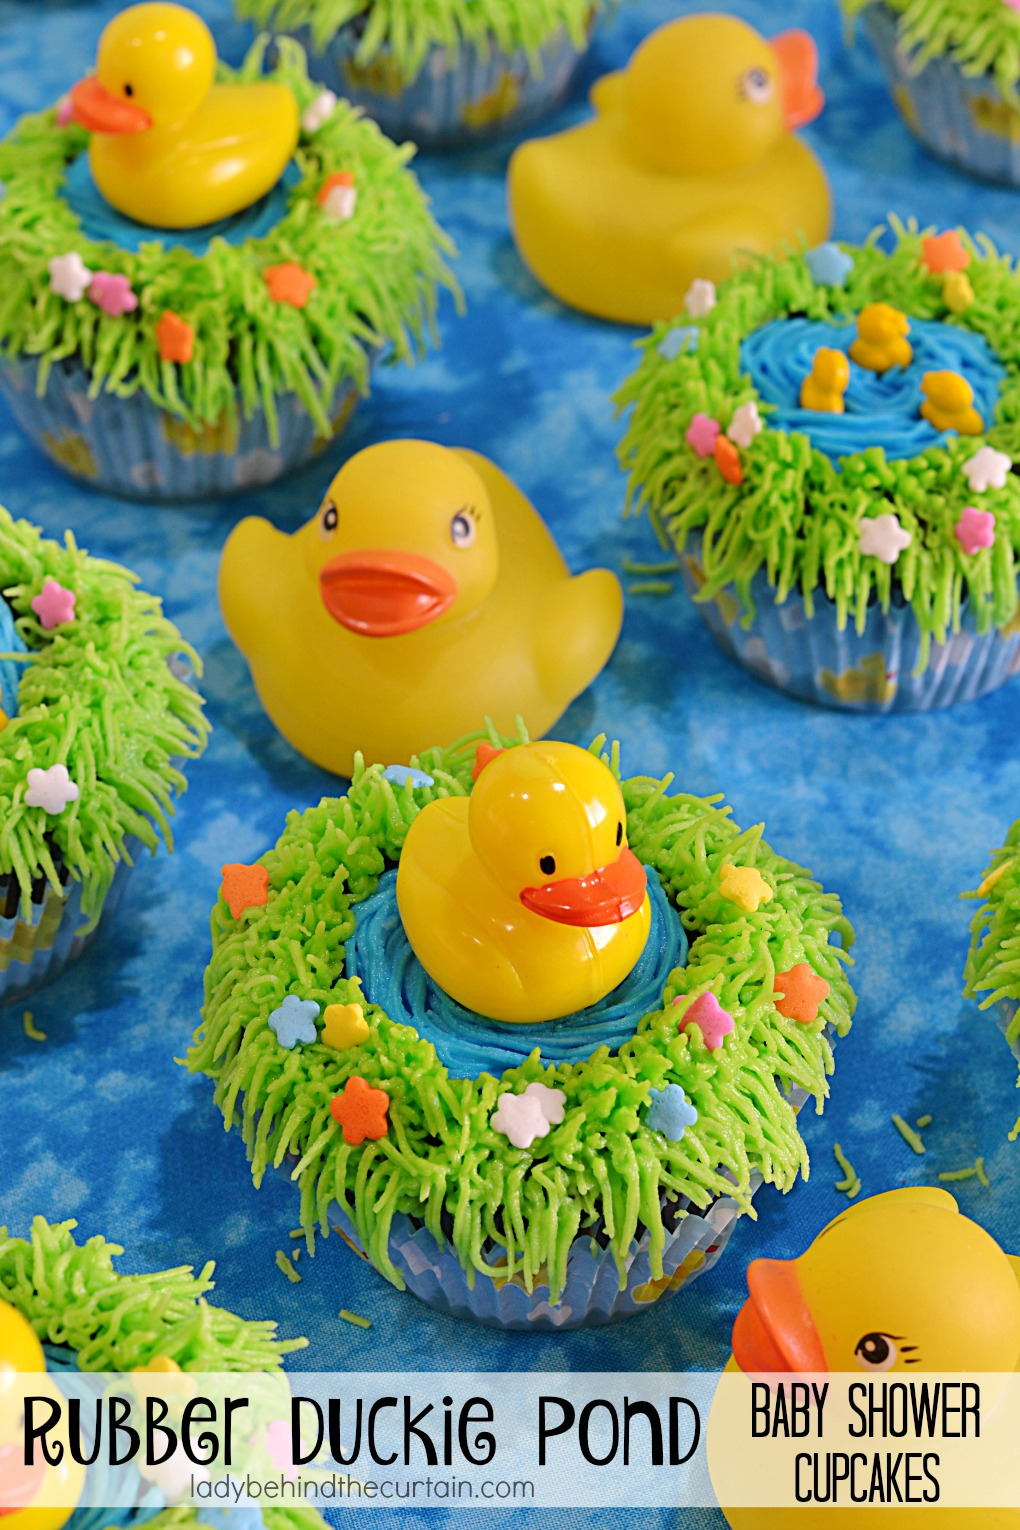 Rubber Duckie Pond Baby Shower Cupcakes